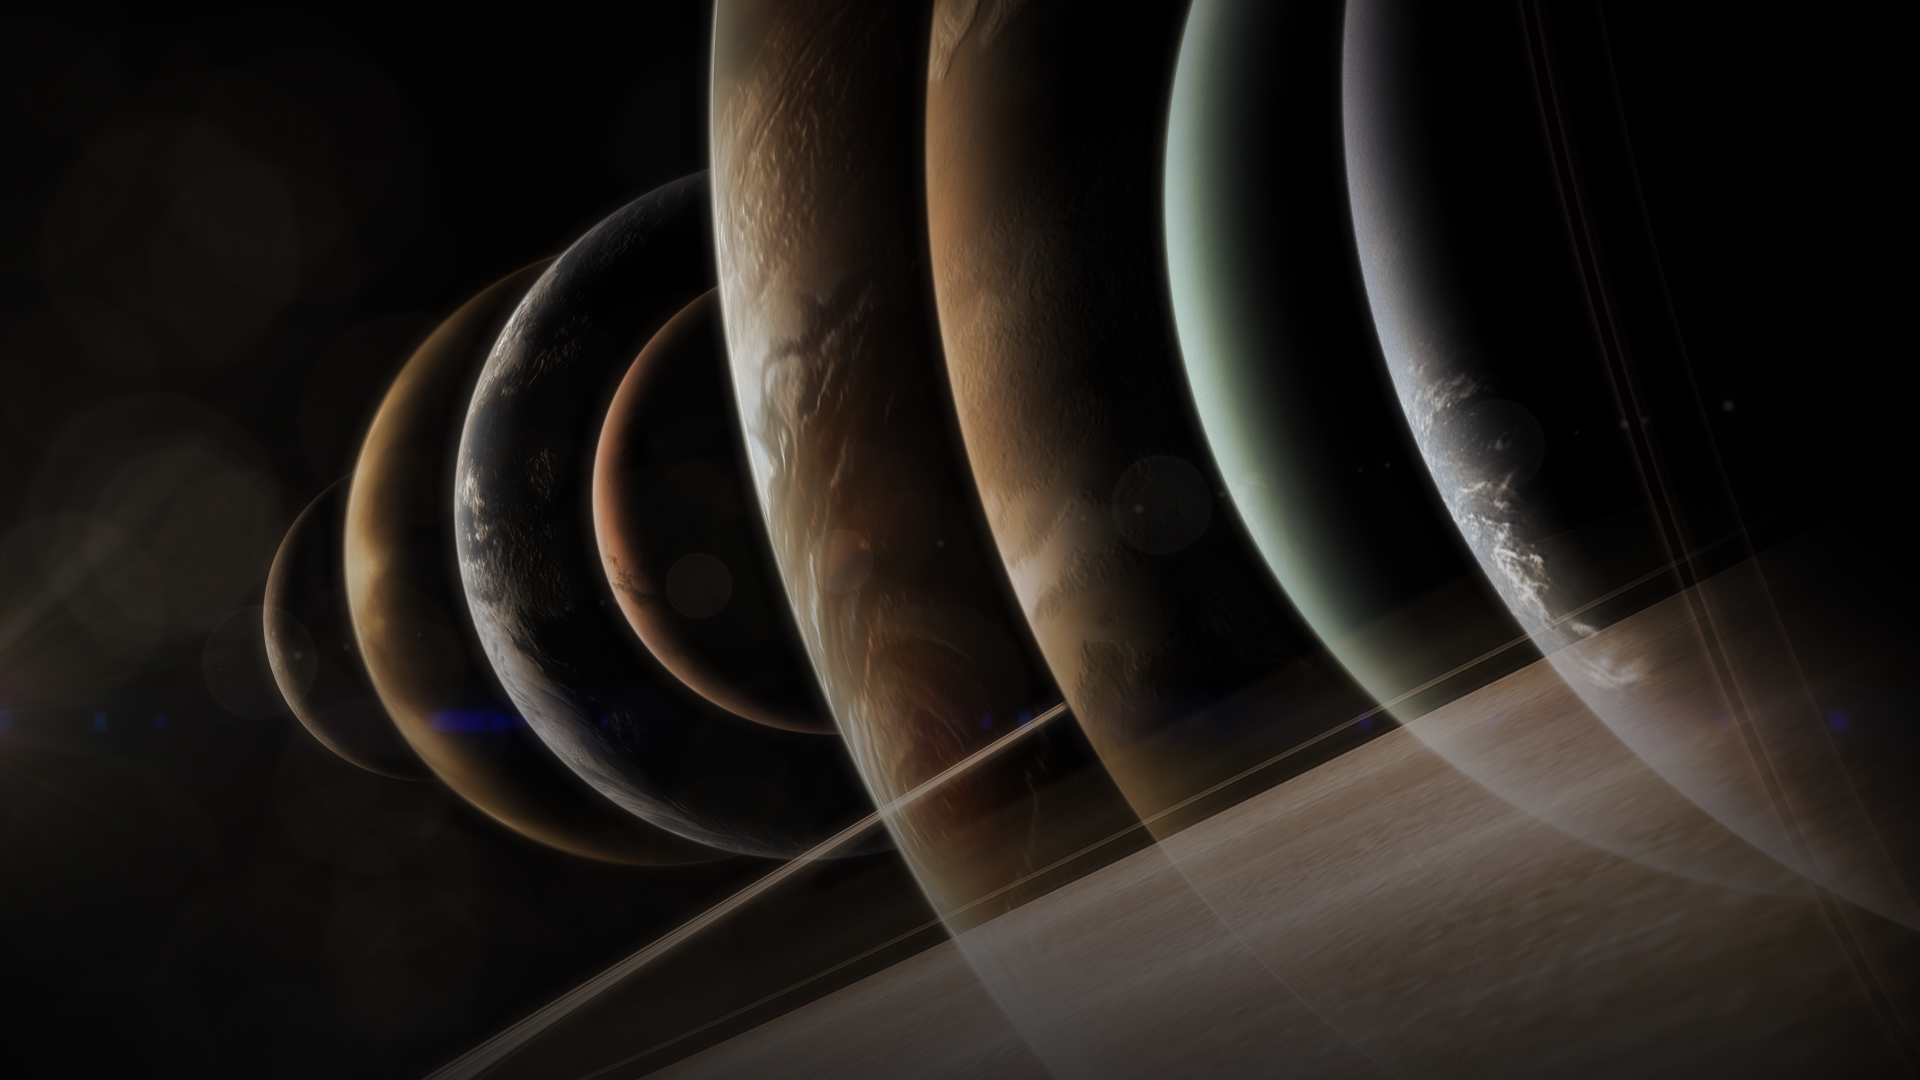 The Planets Series Teaser